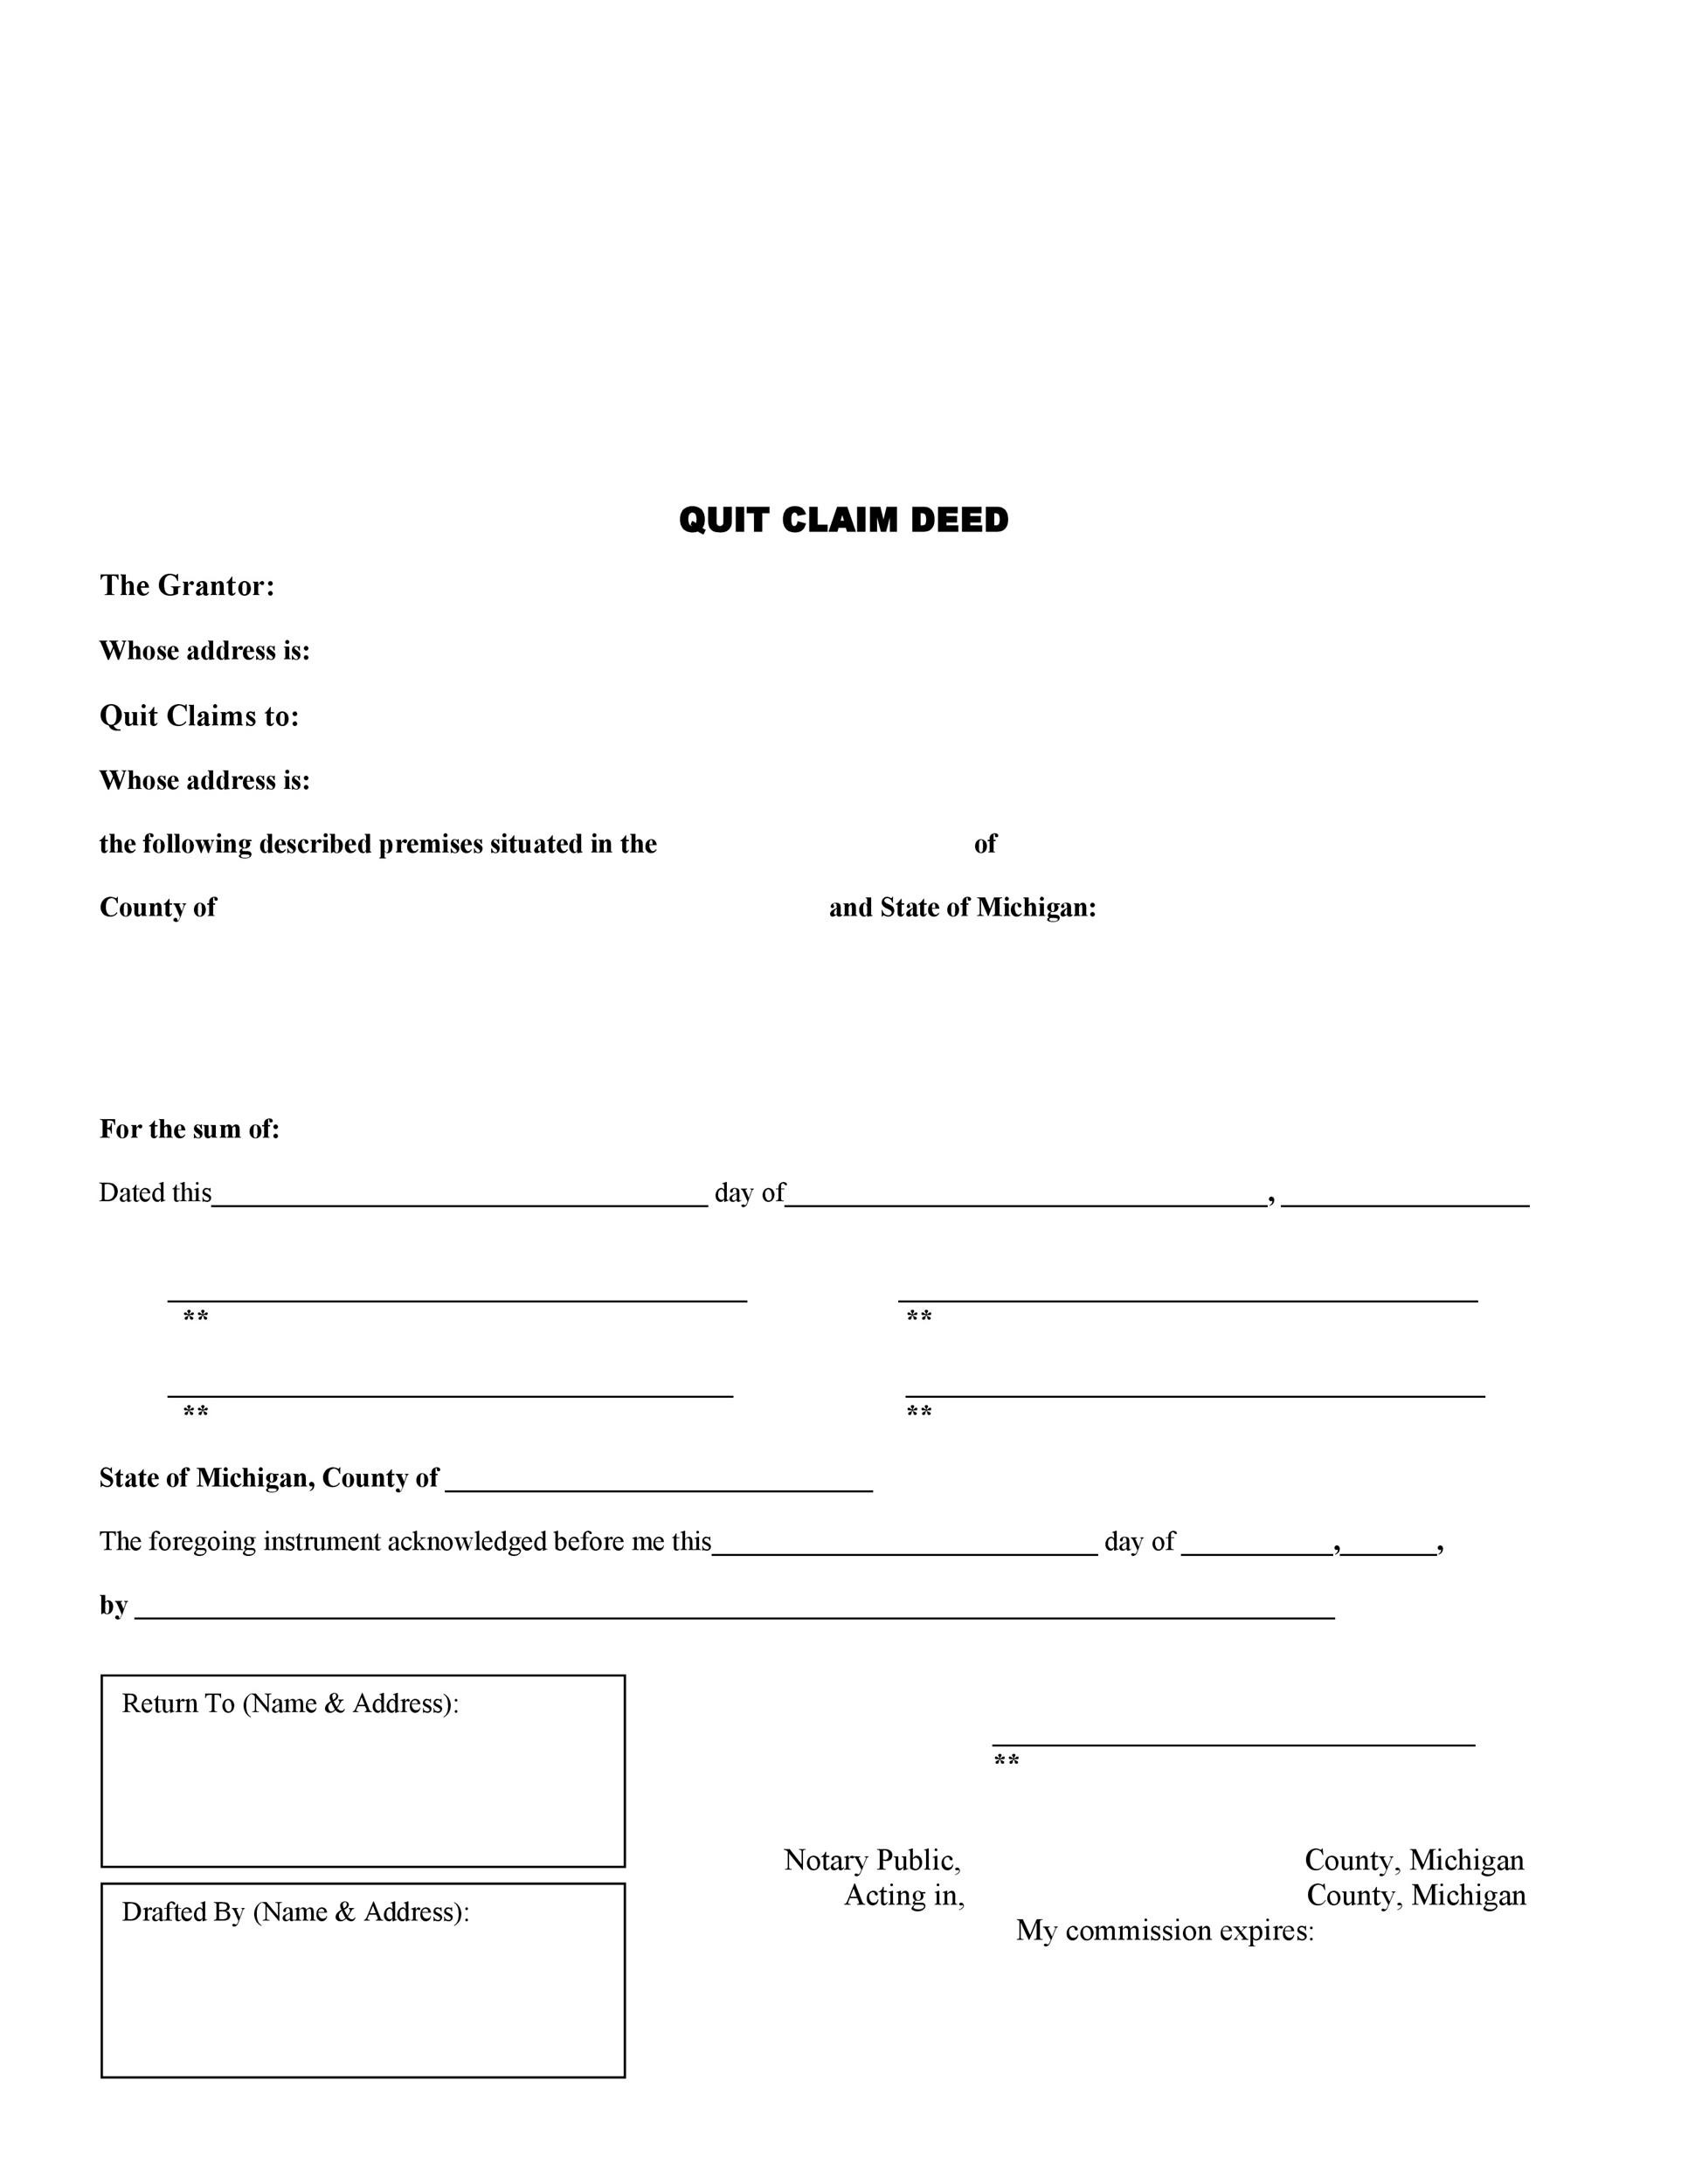 46 Free Quit Claim Deed Forms & Templates - Template Lab